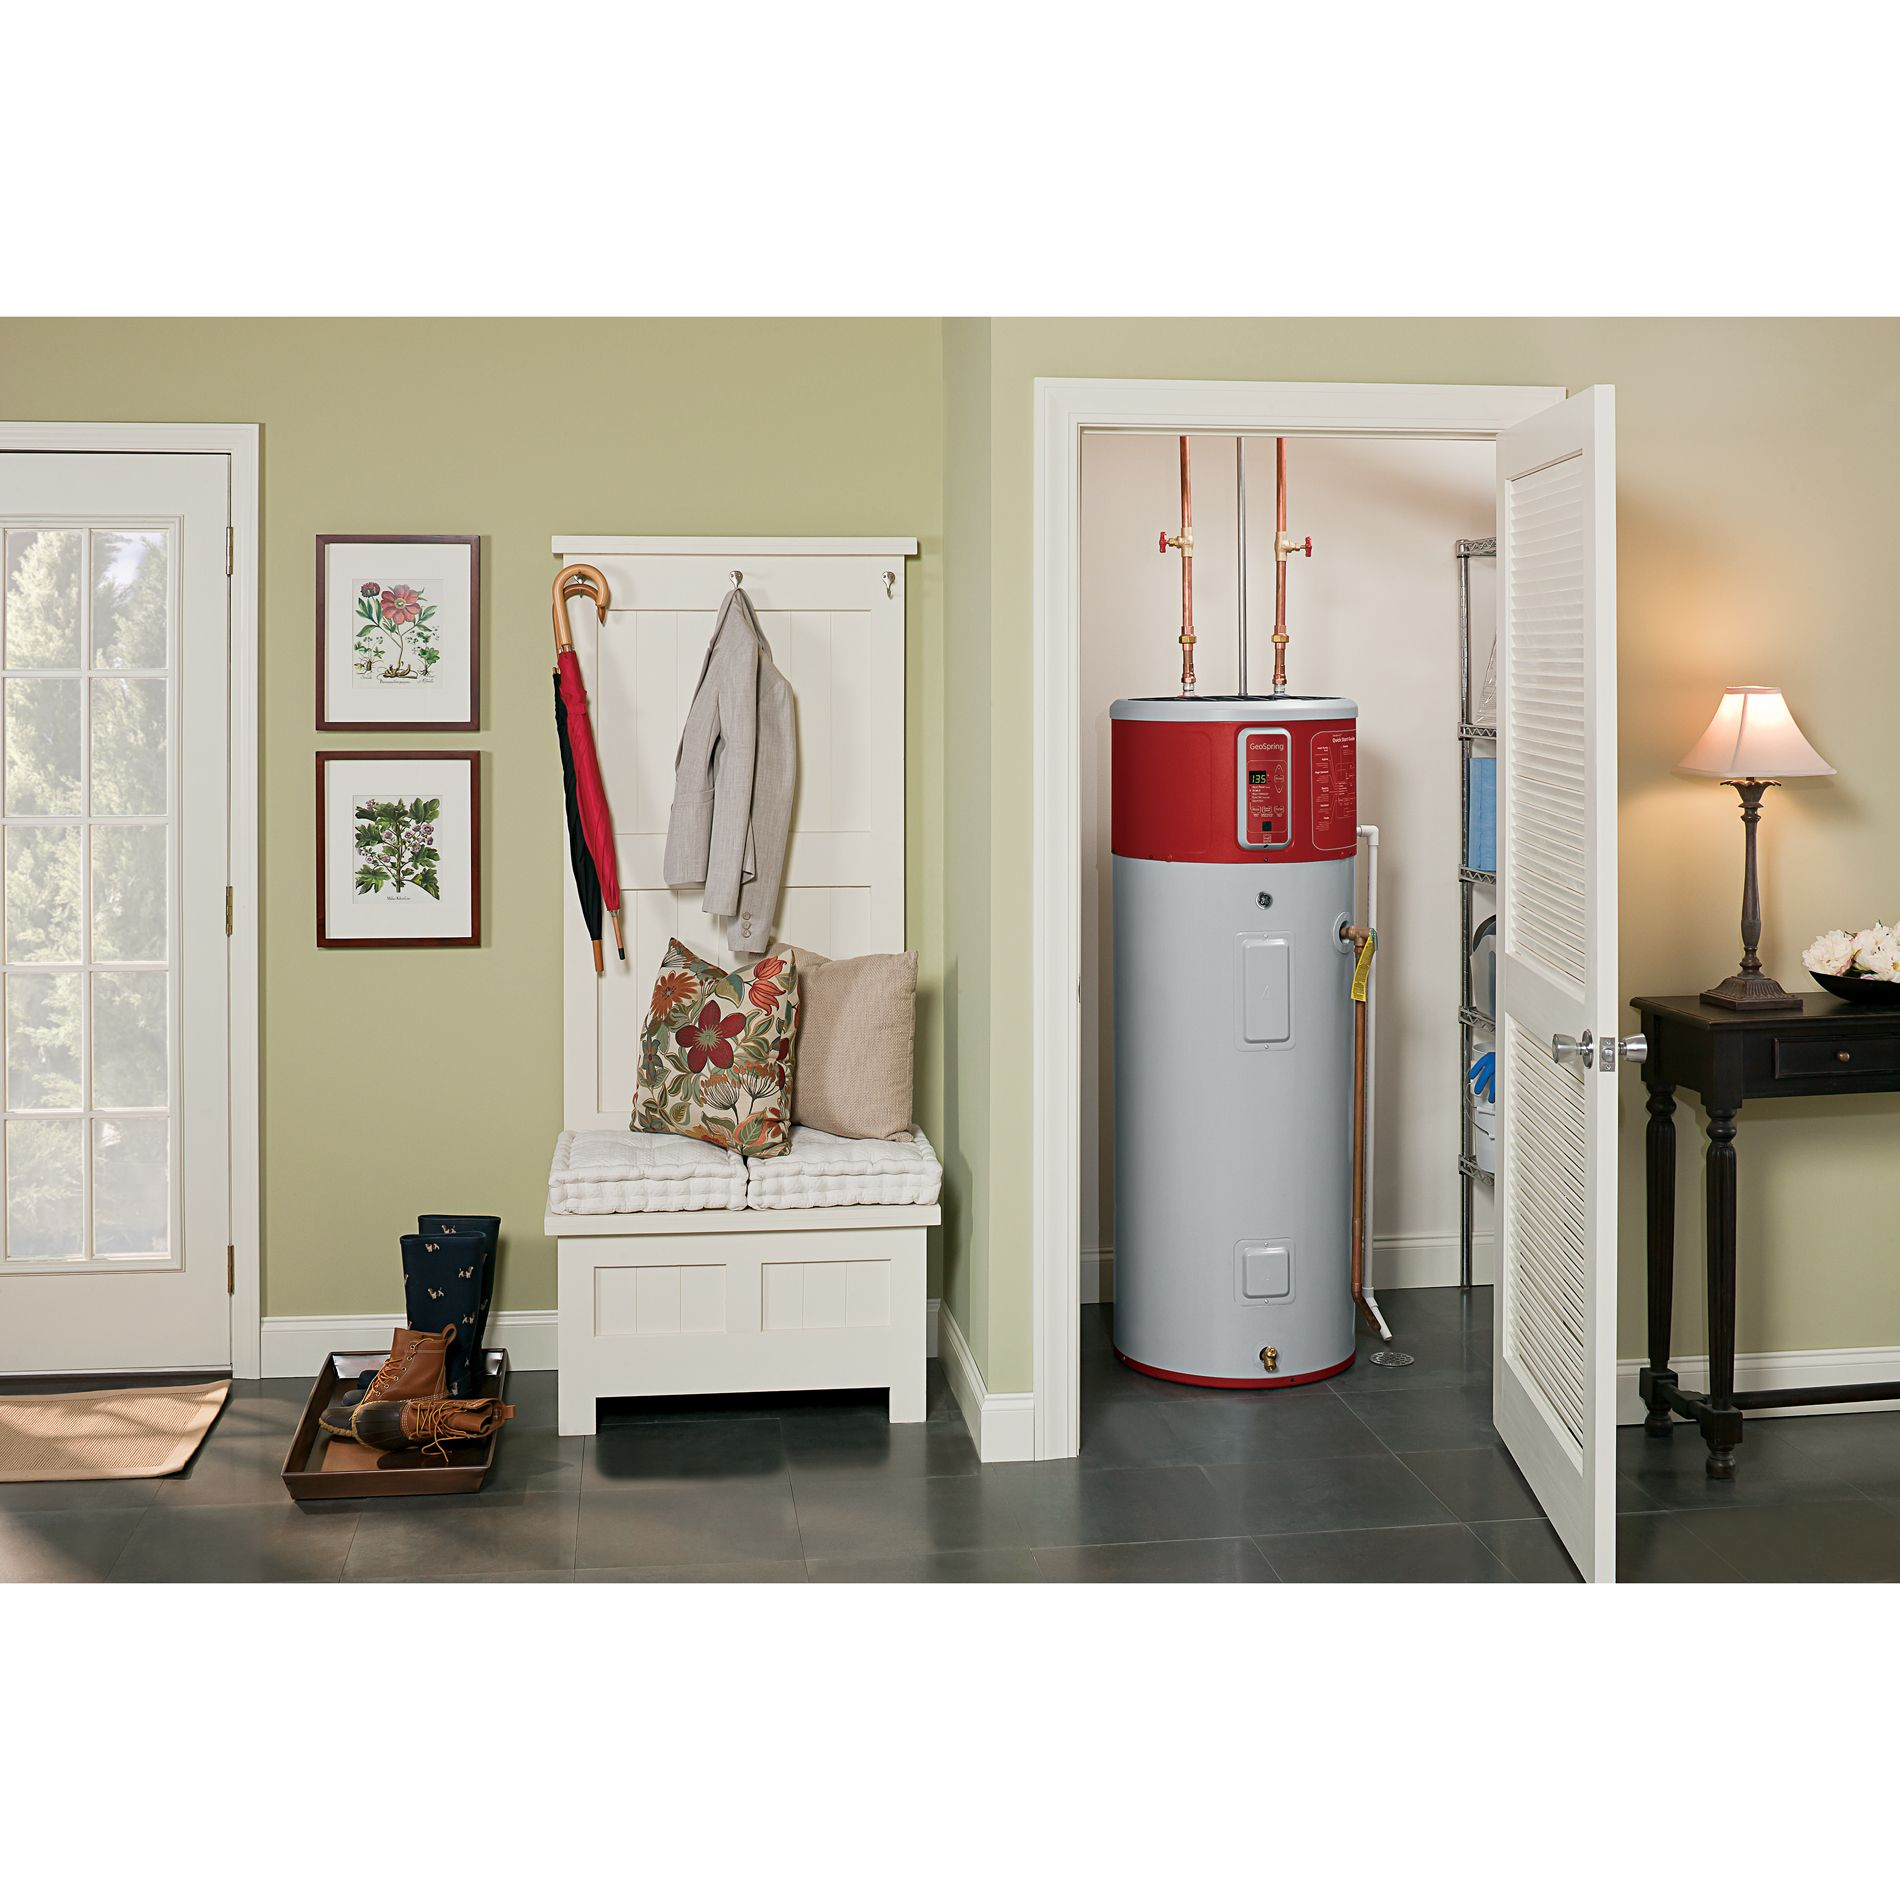 GE Appliances GeoSpring 50 Gal. Hybrid-Electric Heat Pump Water Heater - Limited Availability